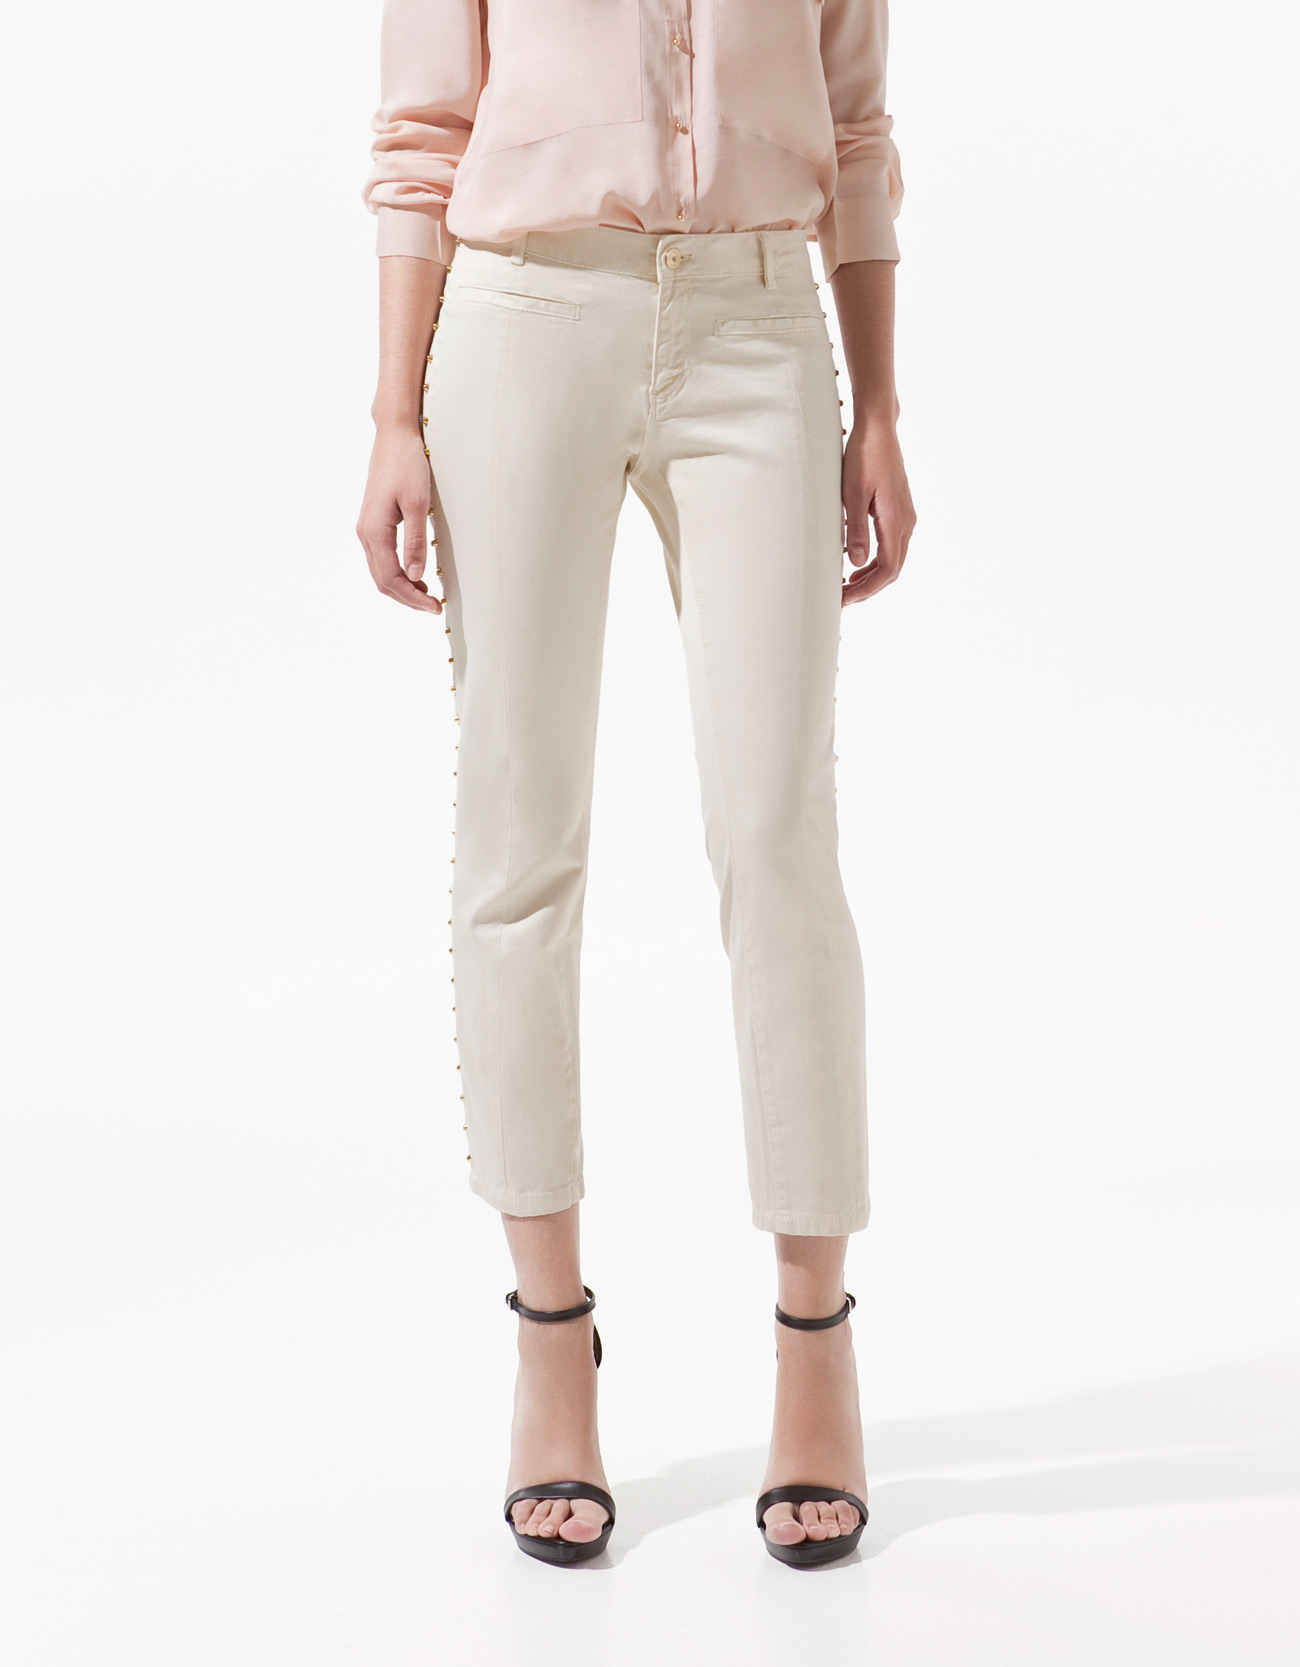 Zara Studded Capri Pants with Piping in Natural | Lyst